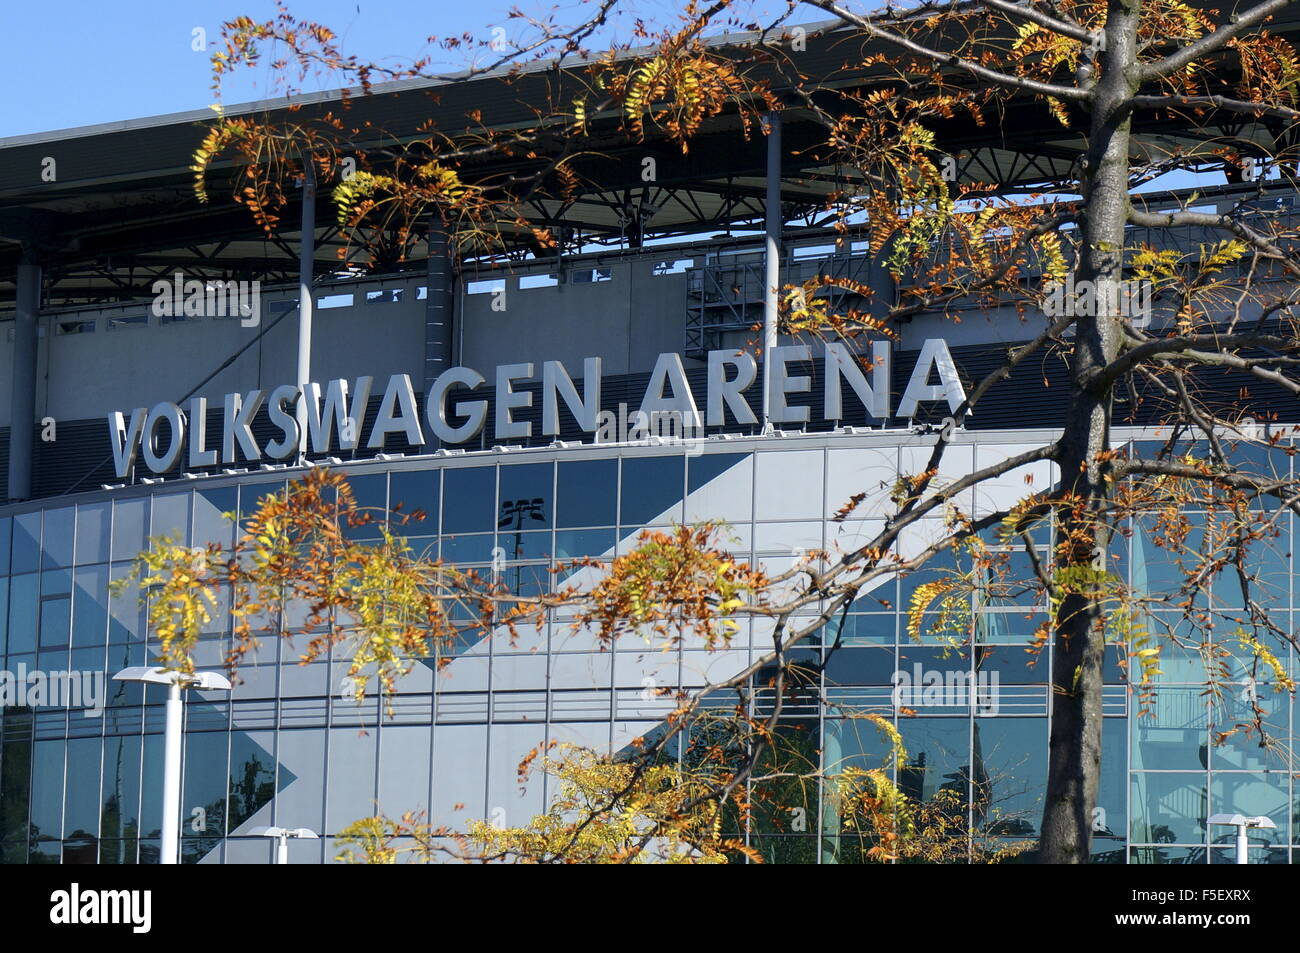 Wolfsburg, Germany. 01st Oct, 2015. The facade of the Volkswagen Arena on a street behind an autumn tree in Wolfsburg, - Stock Image